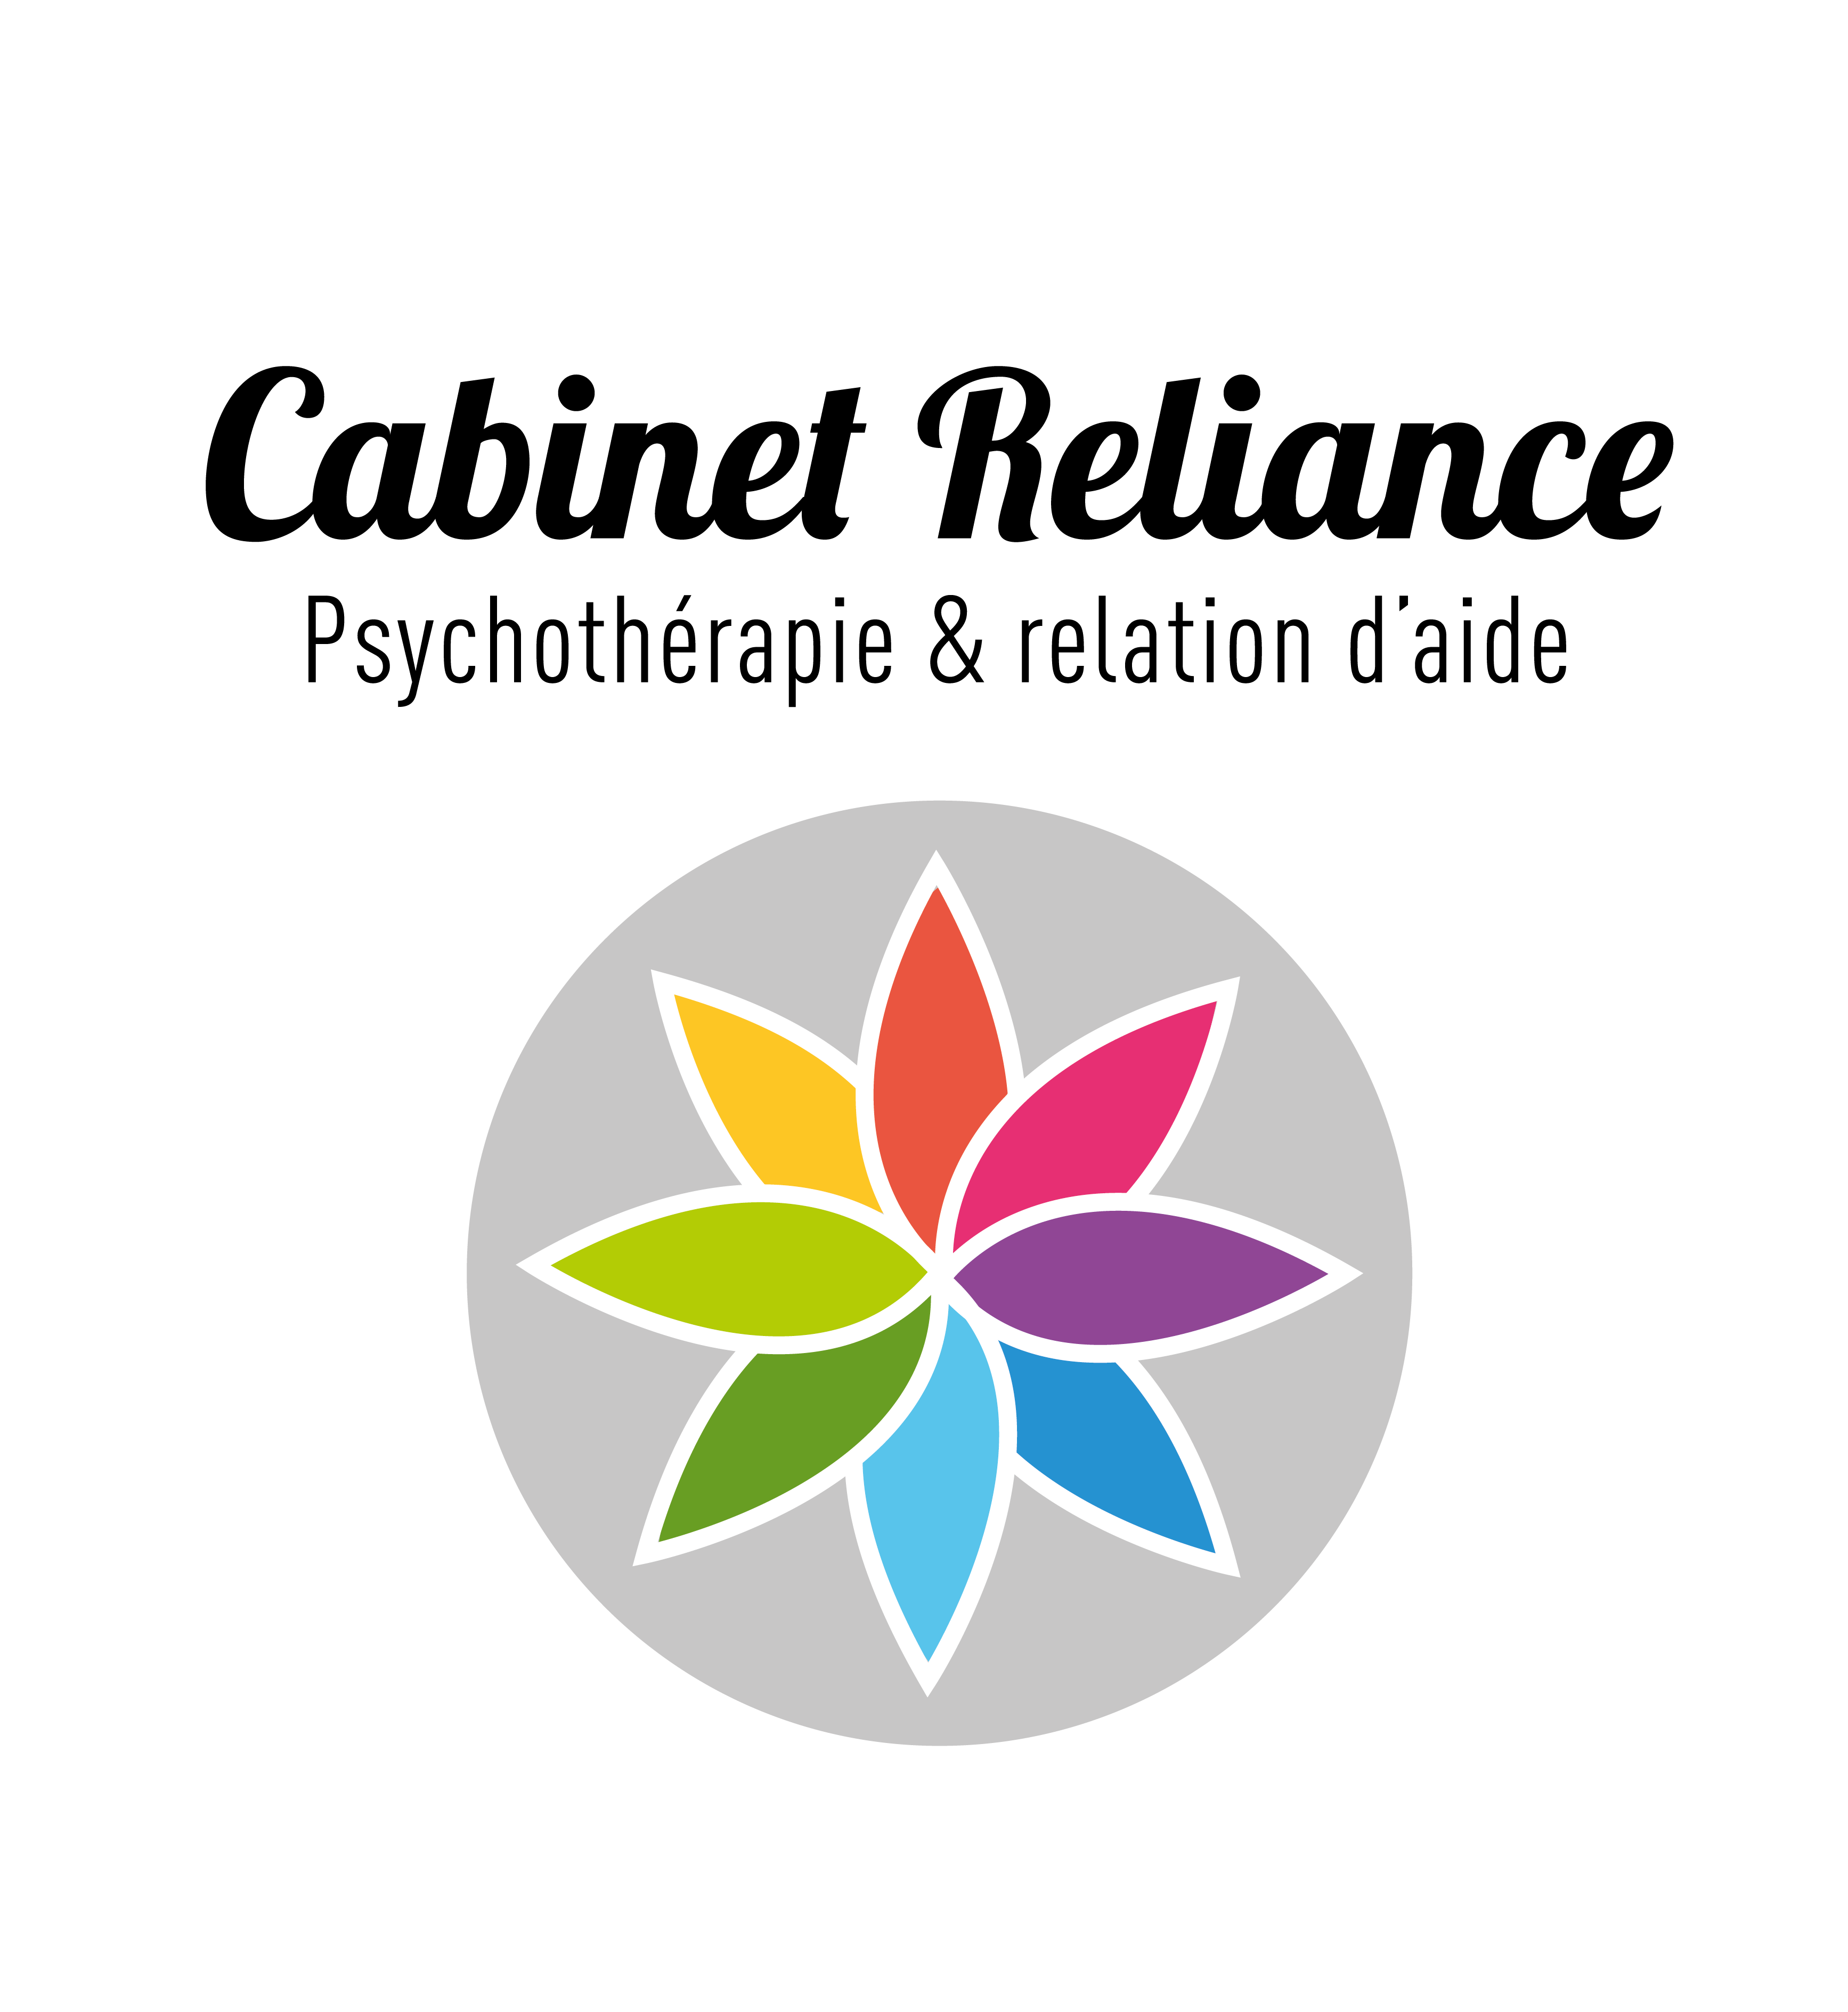 Cabinet Reliance